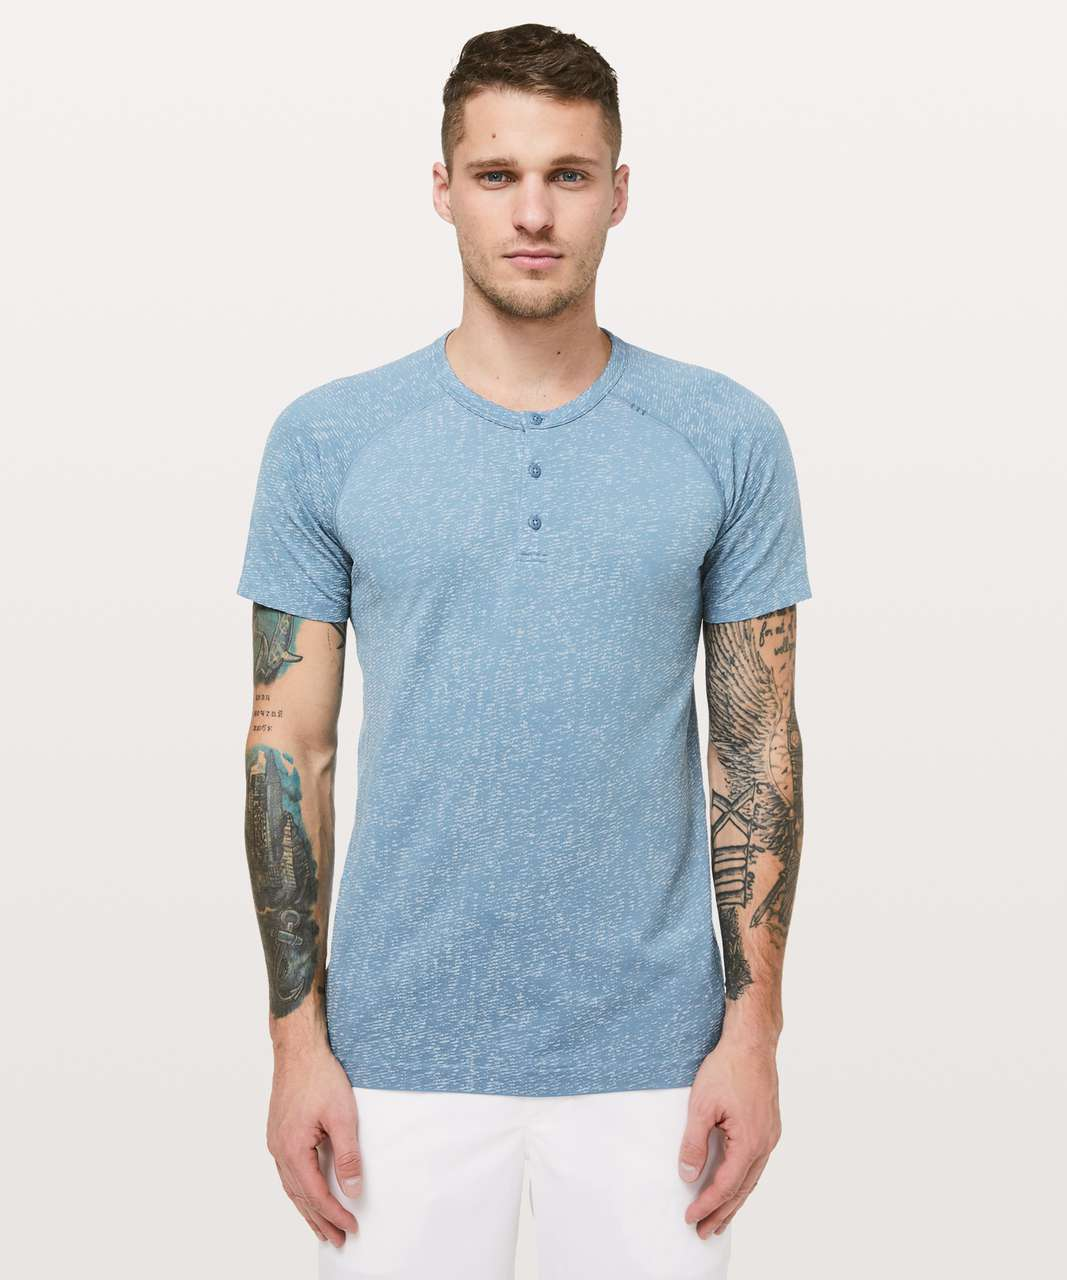 Lululemon Metal Vent Tech Short Sleeve Henley - Utility Blue / White